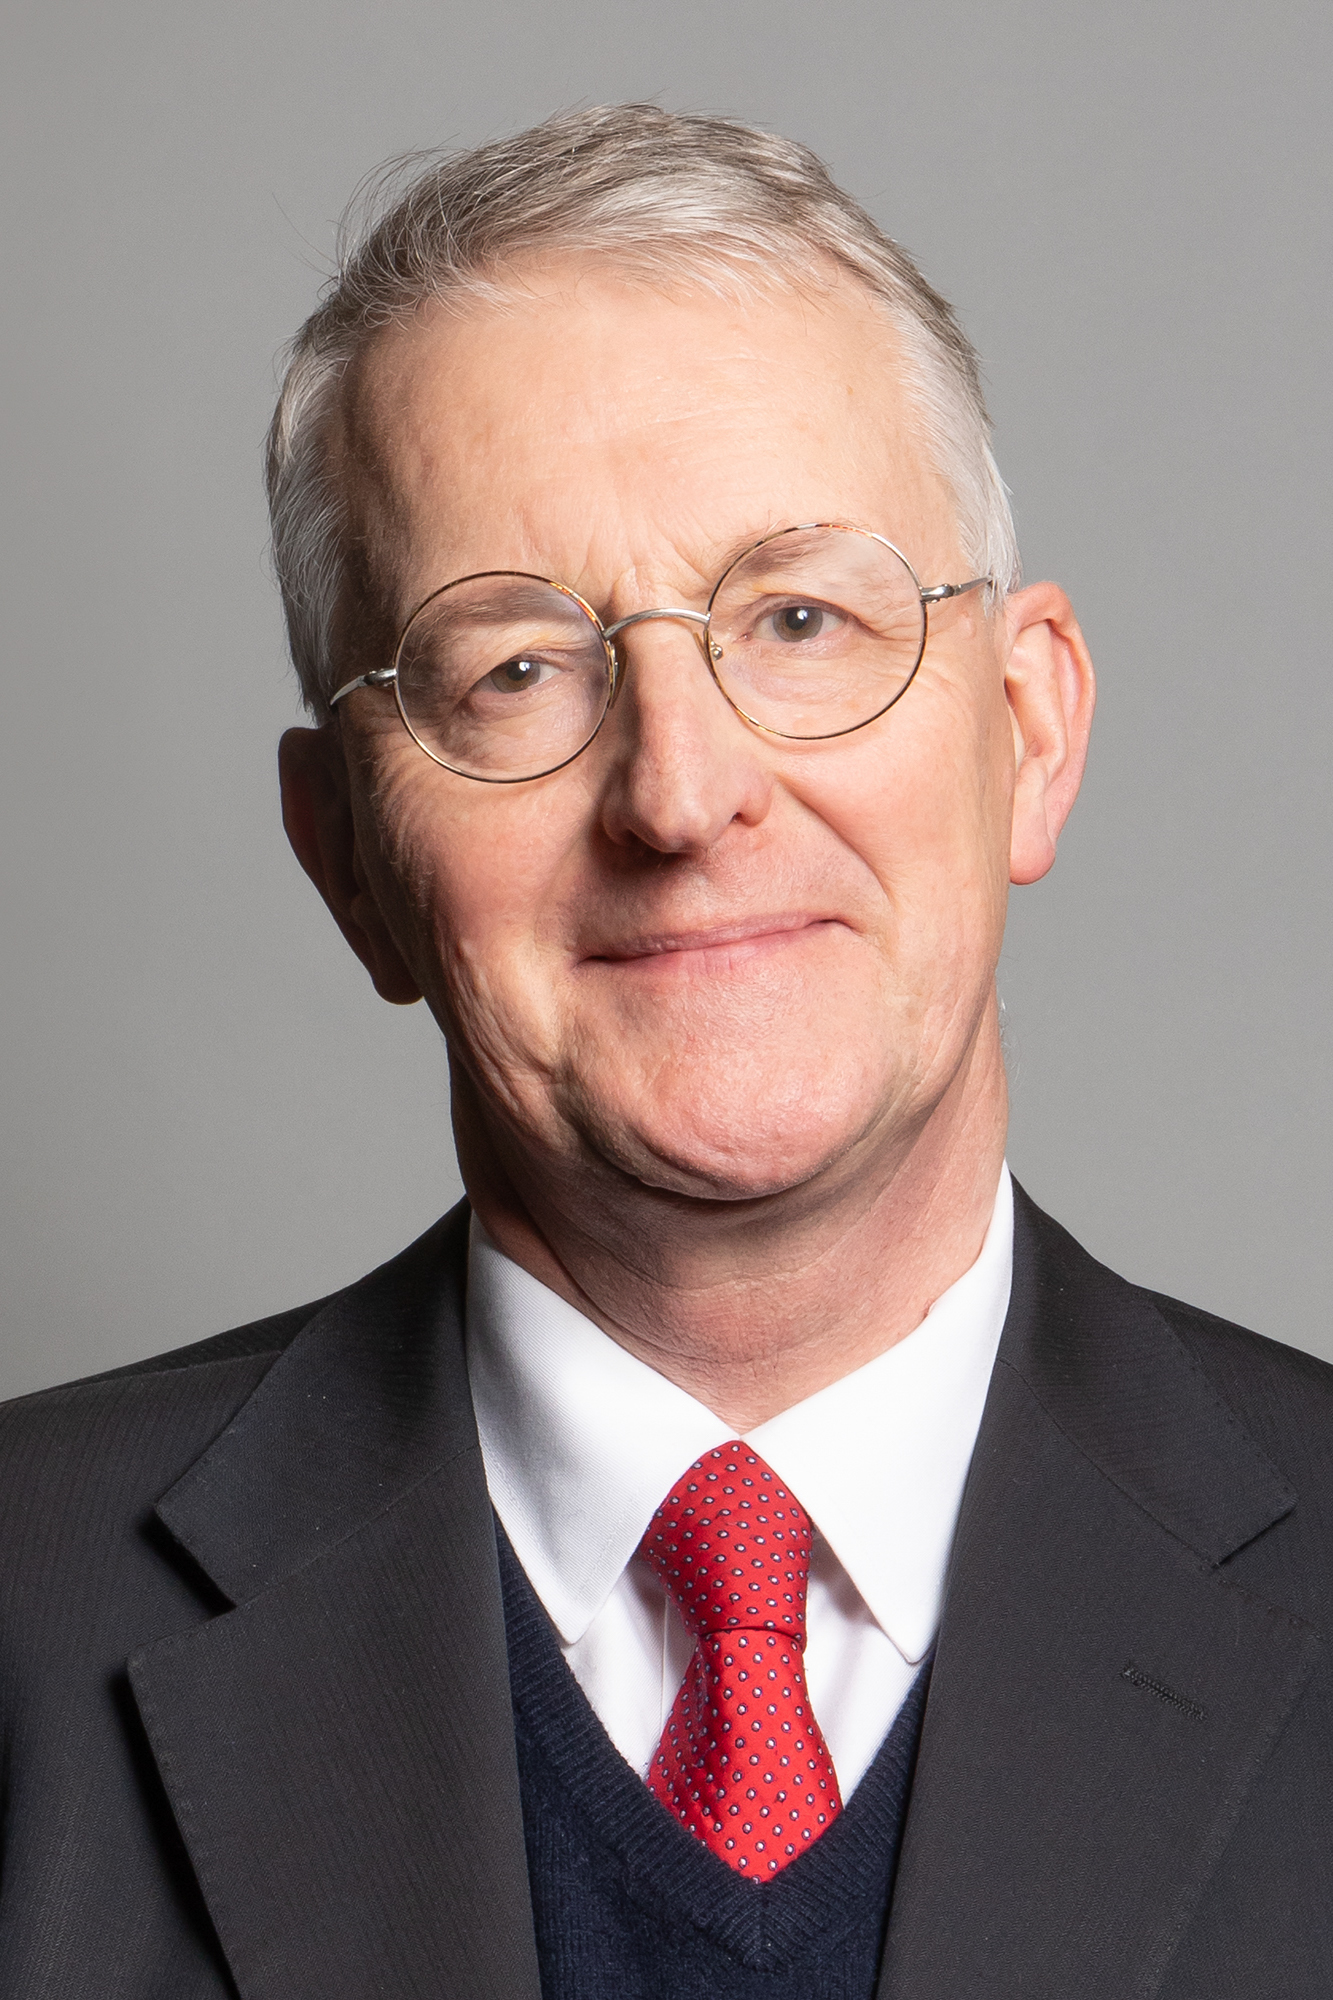 Head and shoulders photo of Hilary Benn